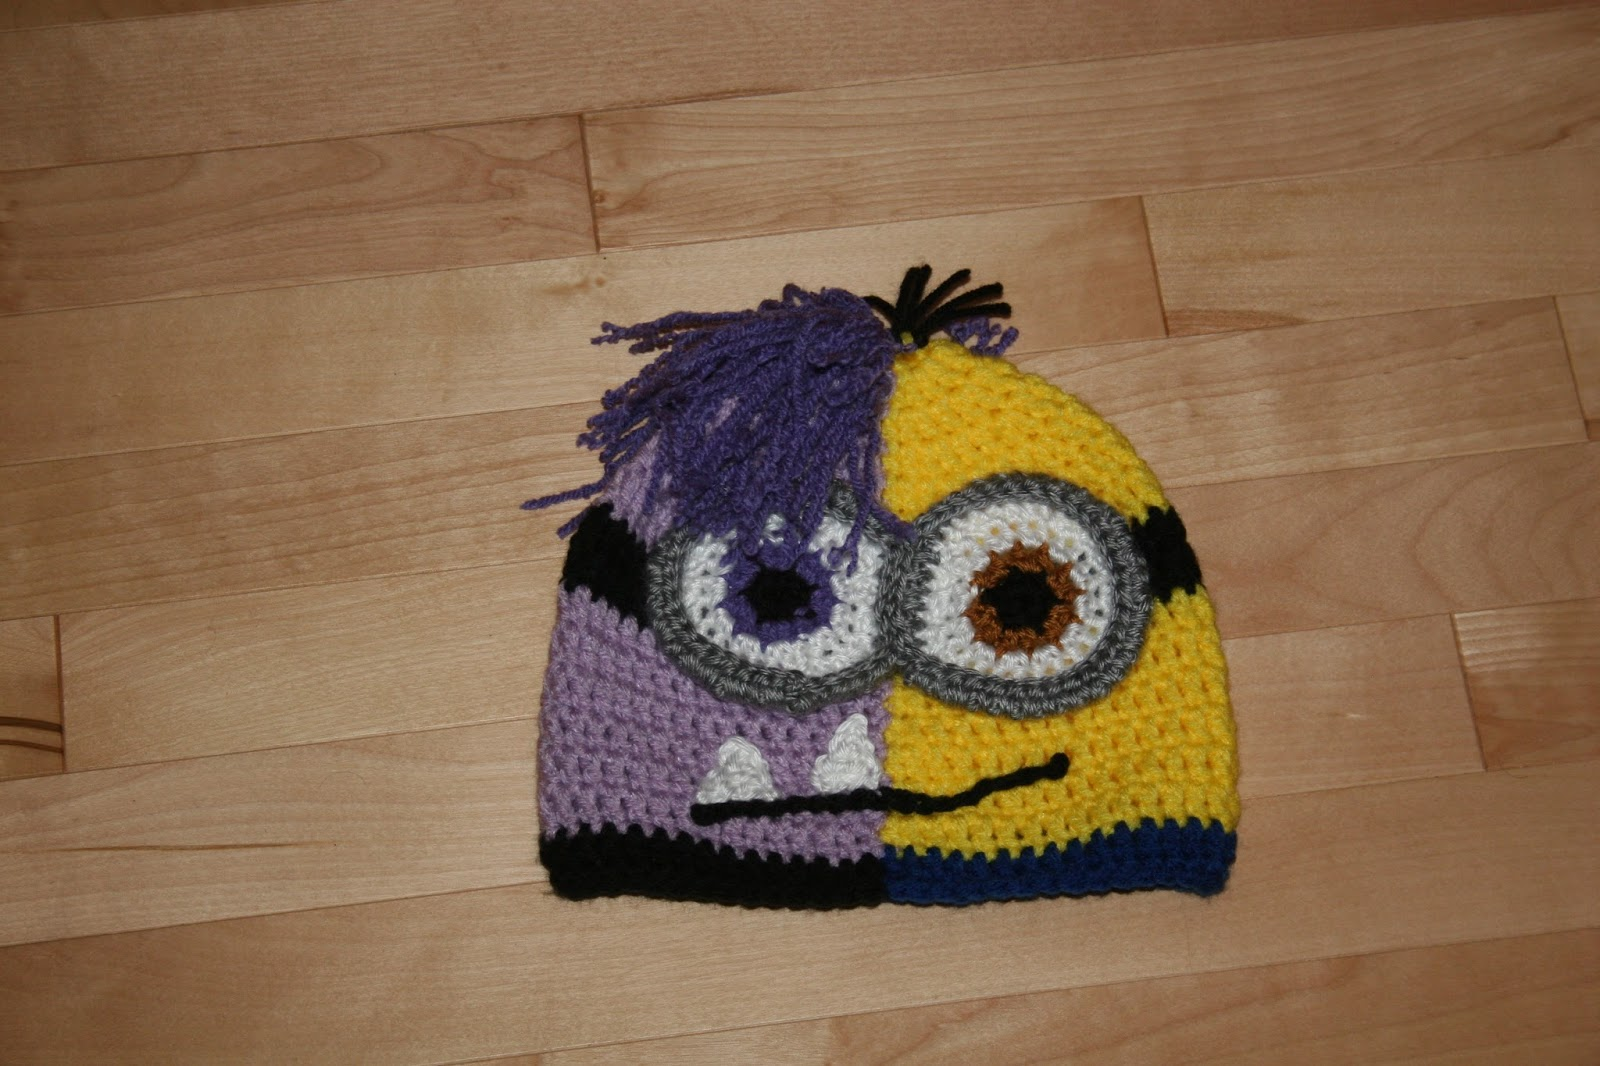 As an aunt I get frequent requests from my niece and nephews. My niece  requested a minion hat. I thought